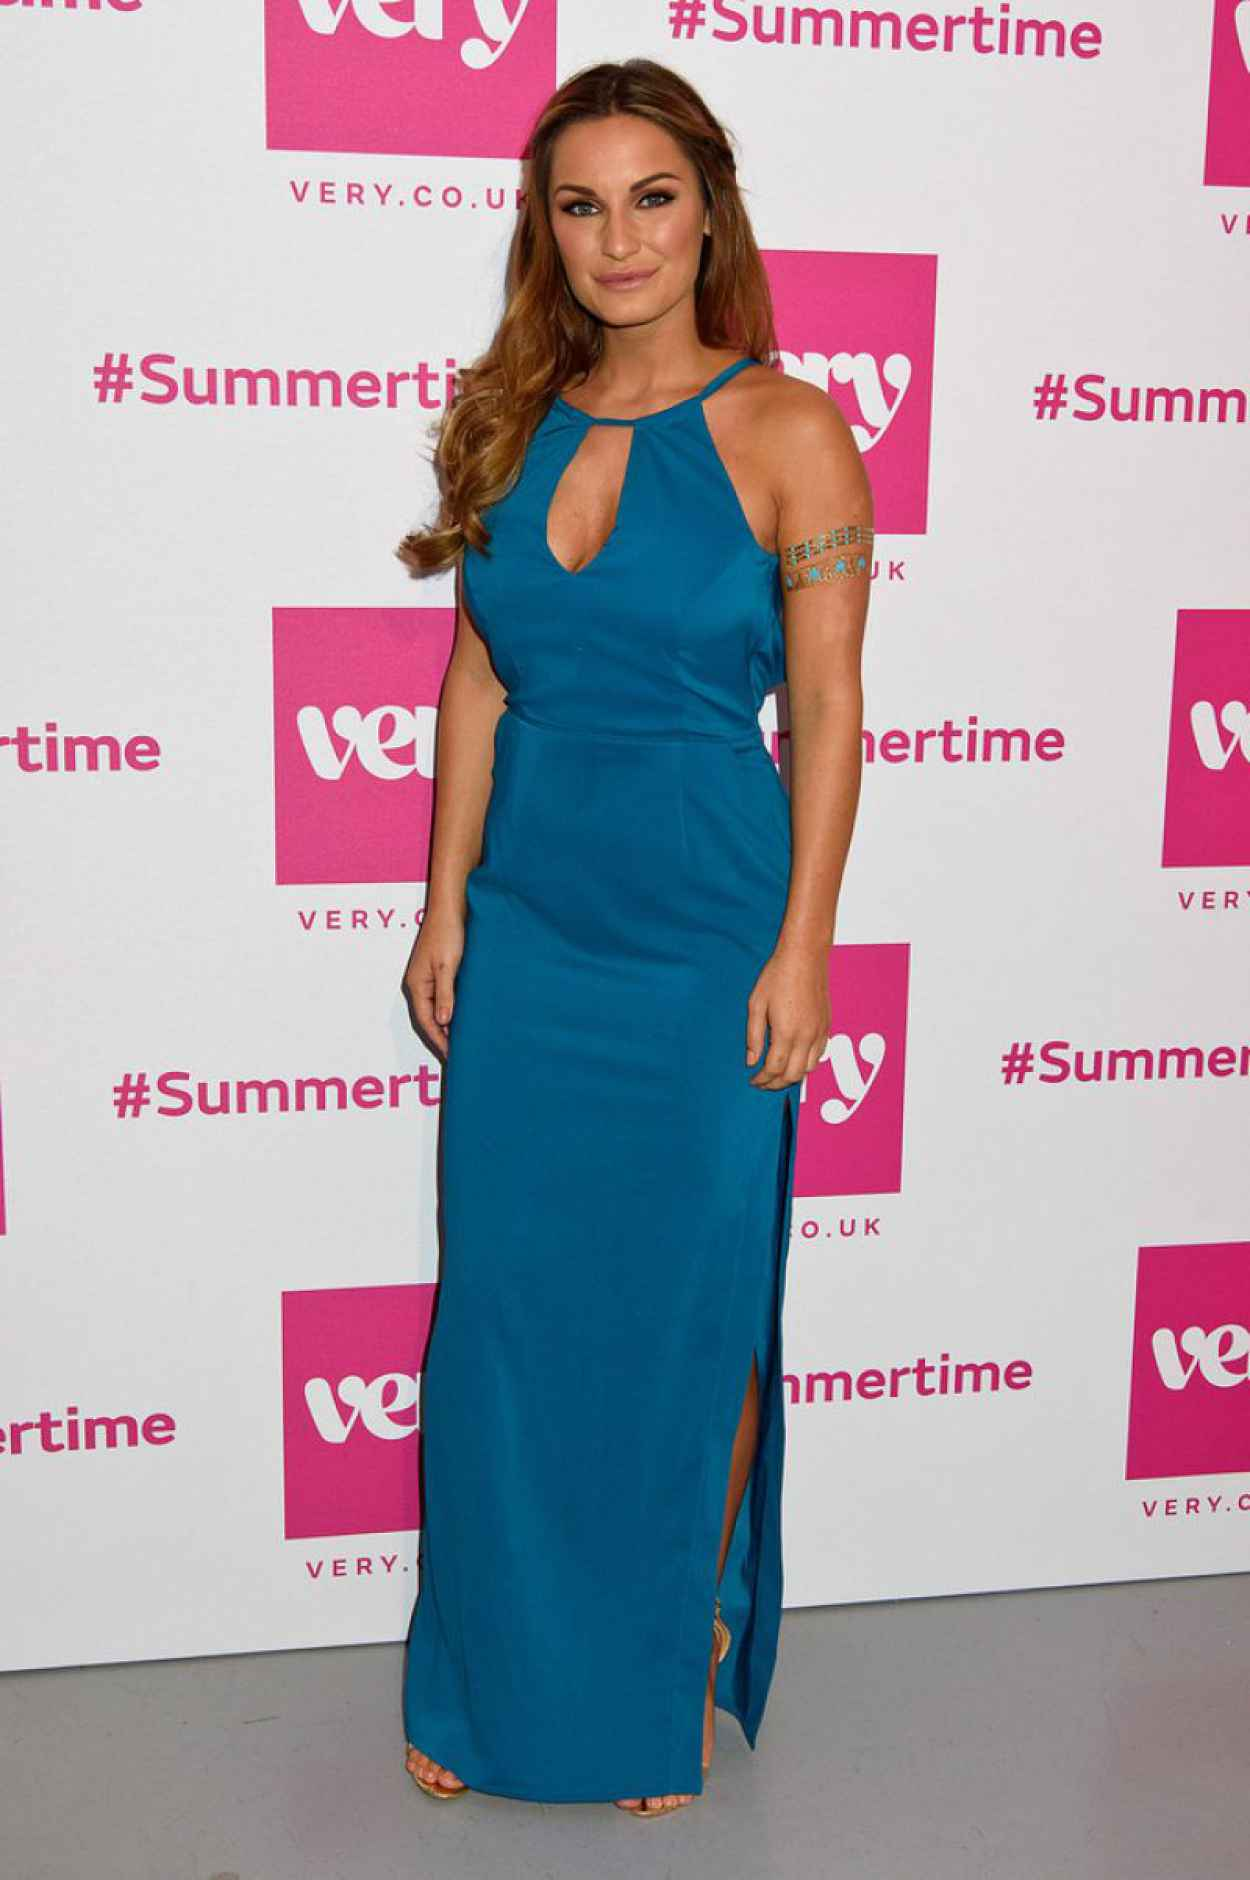 Sam Faiers - Very.co.uk Summertime party in London, August 2015-2